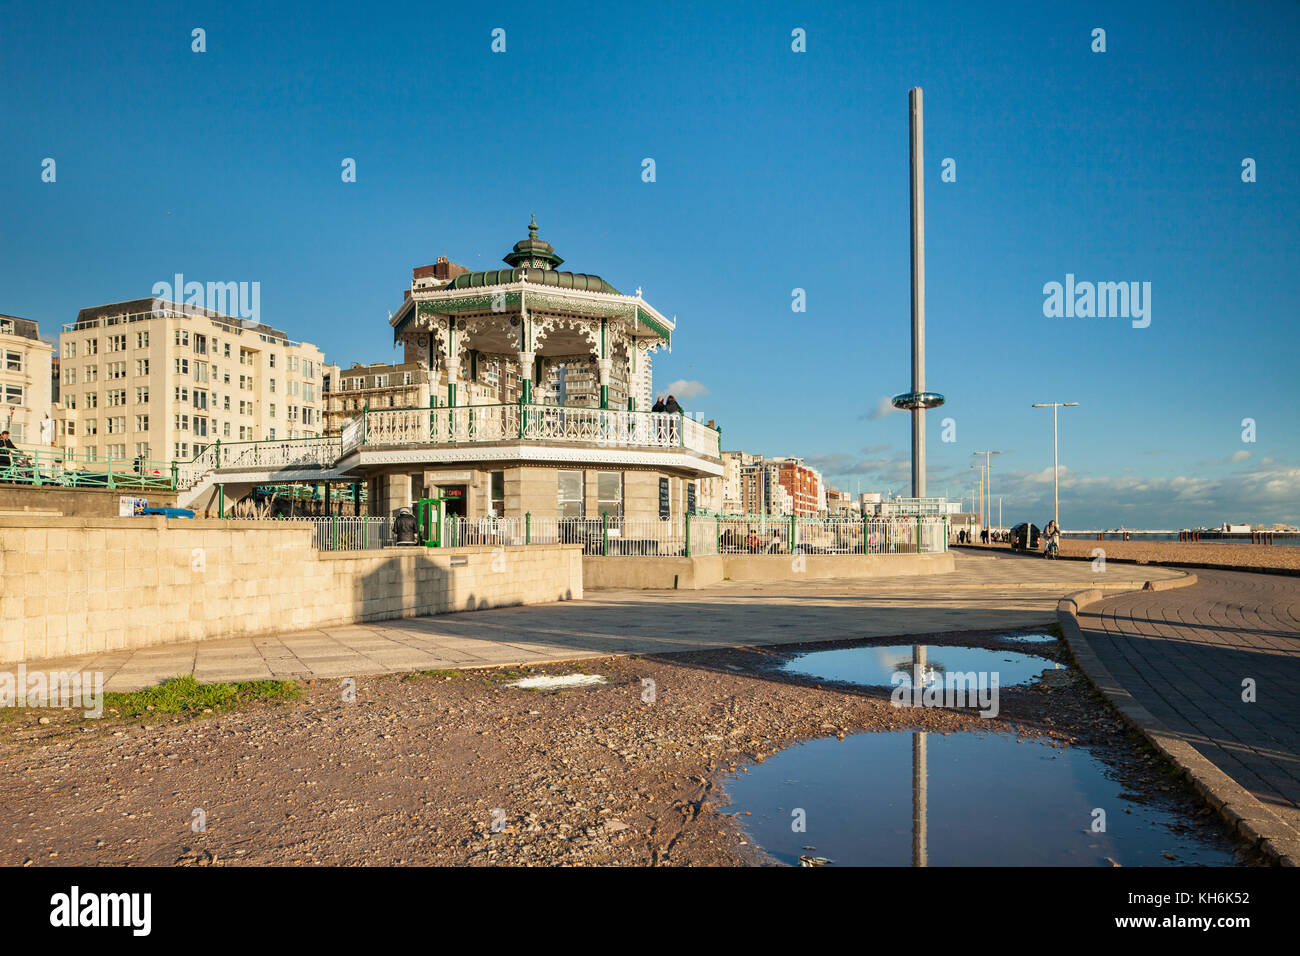 Autumn afternoon on Brighton seafront, East Sussex, England. The Bandstand and i360 tower in the distance. - Stock Image